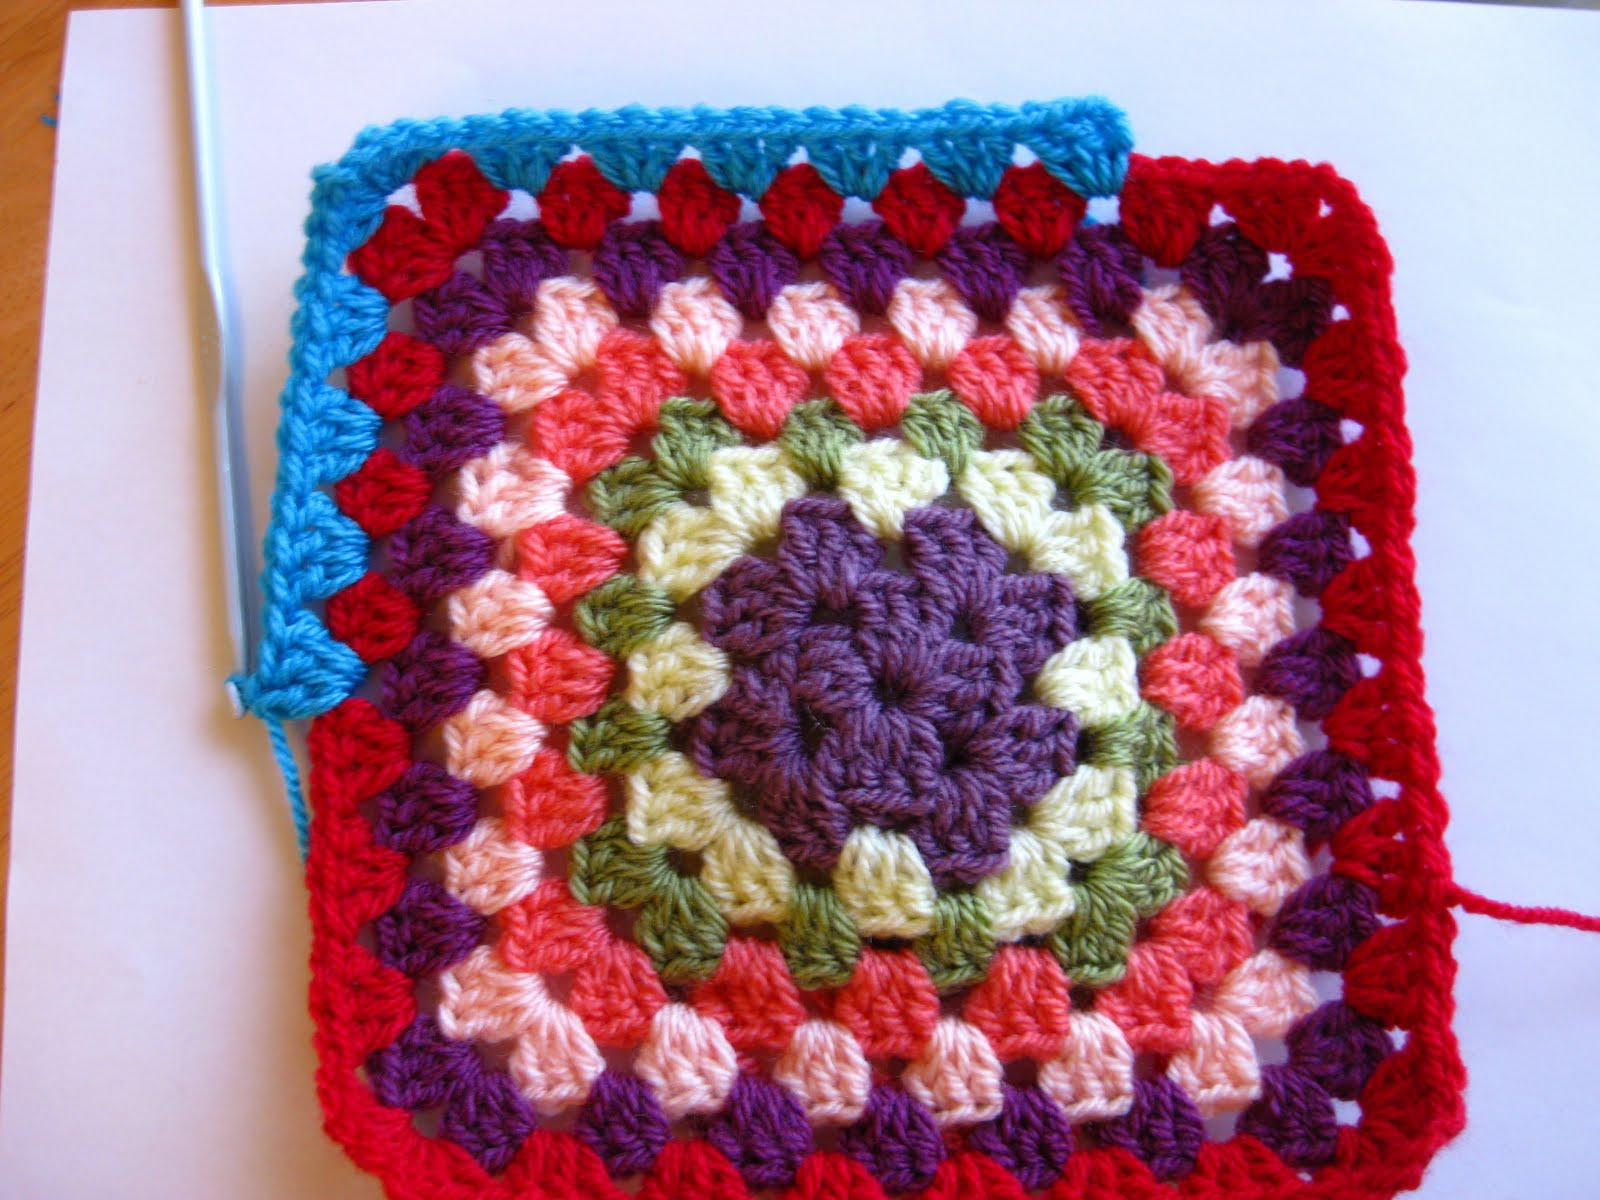 How To Crochet Granny Squares : How To Crochet Granny Squares For Beginners Ehow